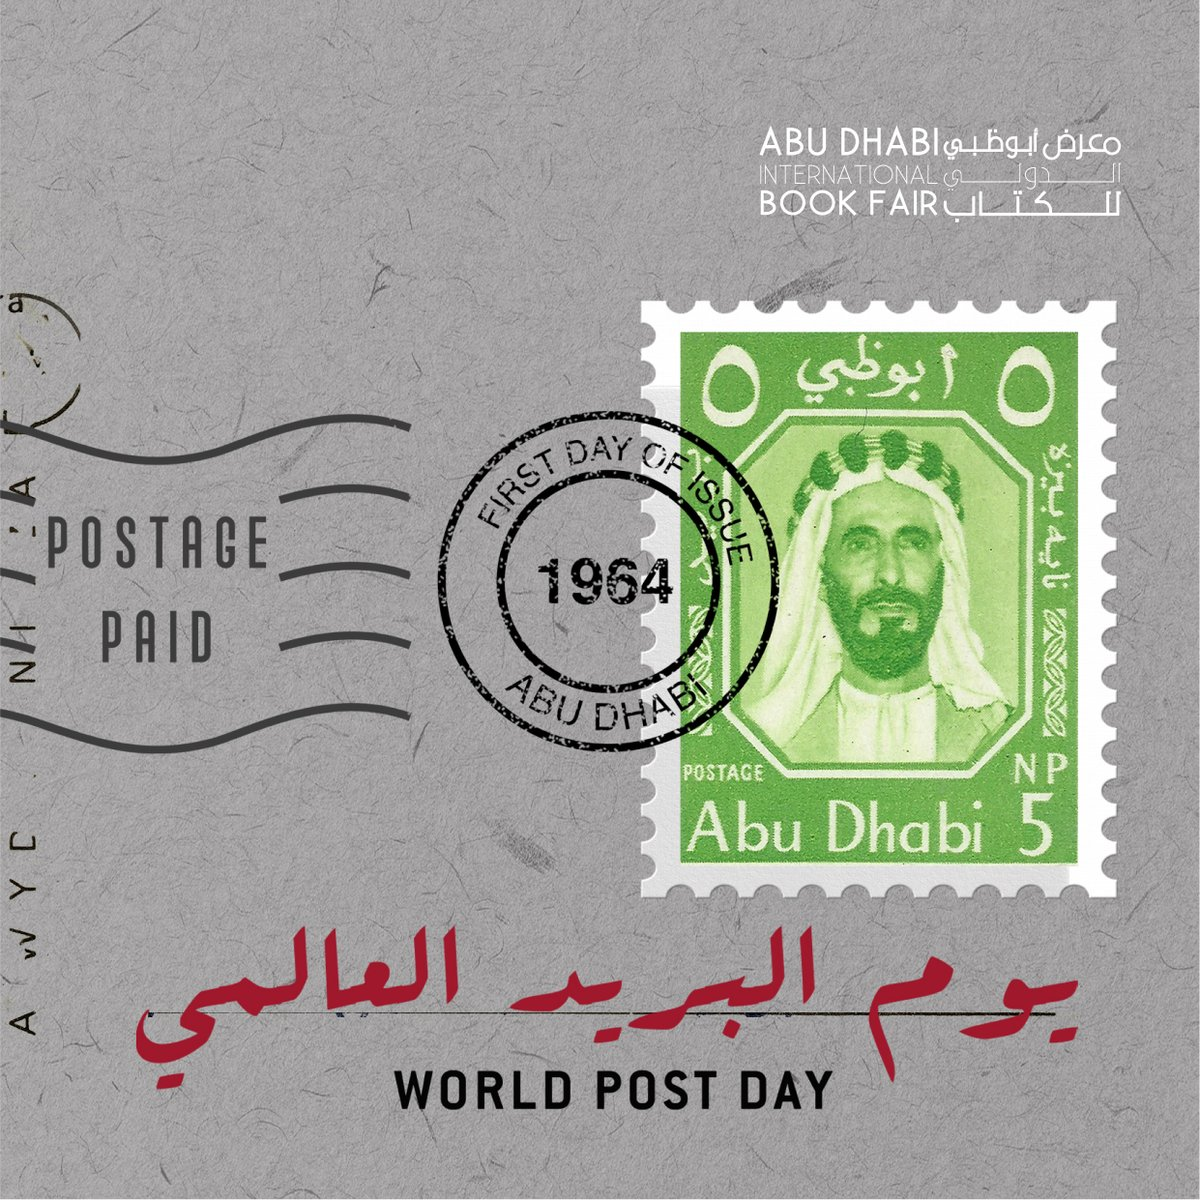 Today marks the #WorldPostDay! A good occasion to share the first Abu Dhabi stamp of 1964 depicting the Ruler at the time, Sheikh Shakhbout bin Zayed Al Nahyan  #ADIBF #Reading #Books #Culture #InAbuDhabi #CulturAll https://t.co/ZDOQDf5I8l